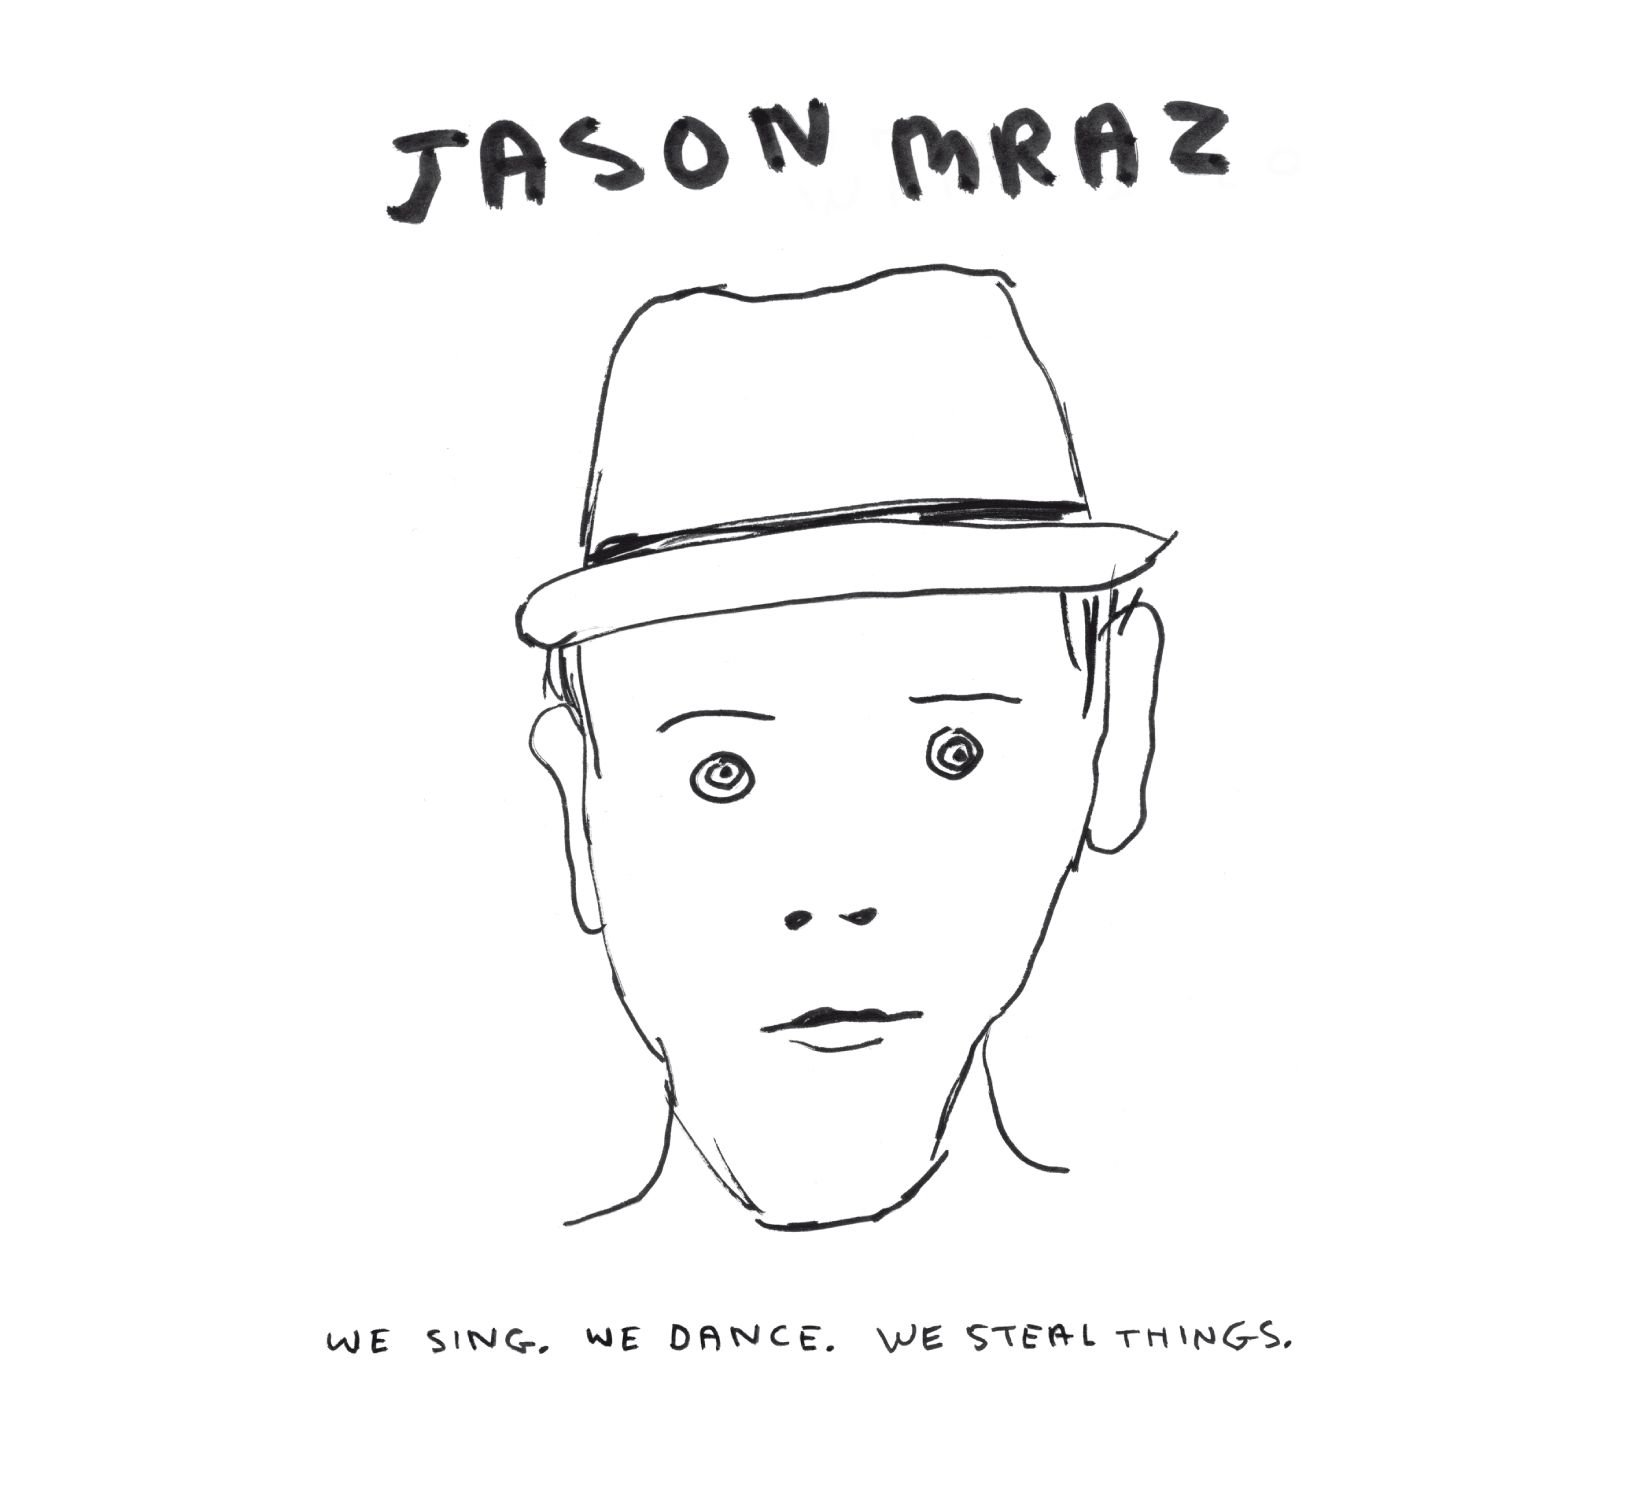 We Sing, We Dance, We Steal Things by MRAZ,JASON